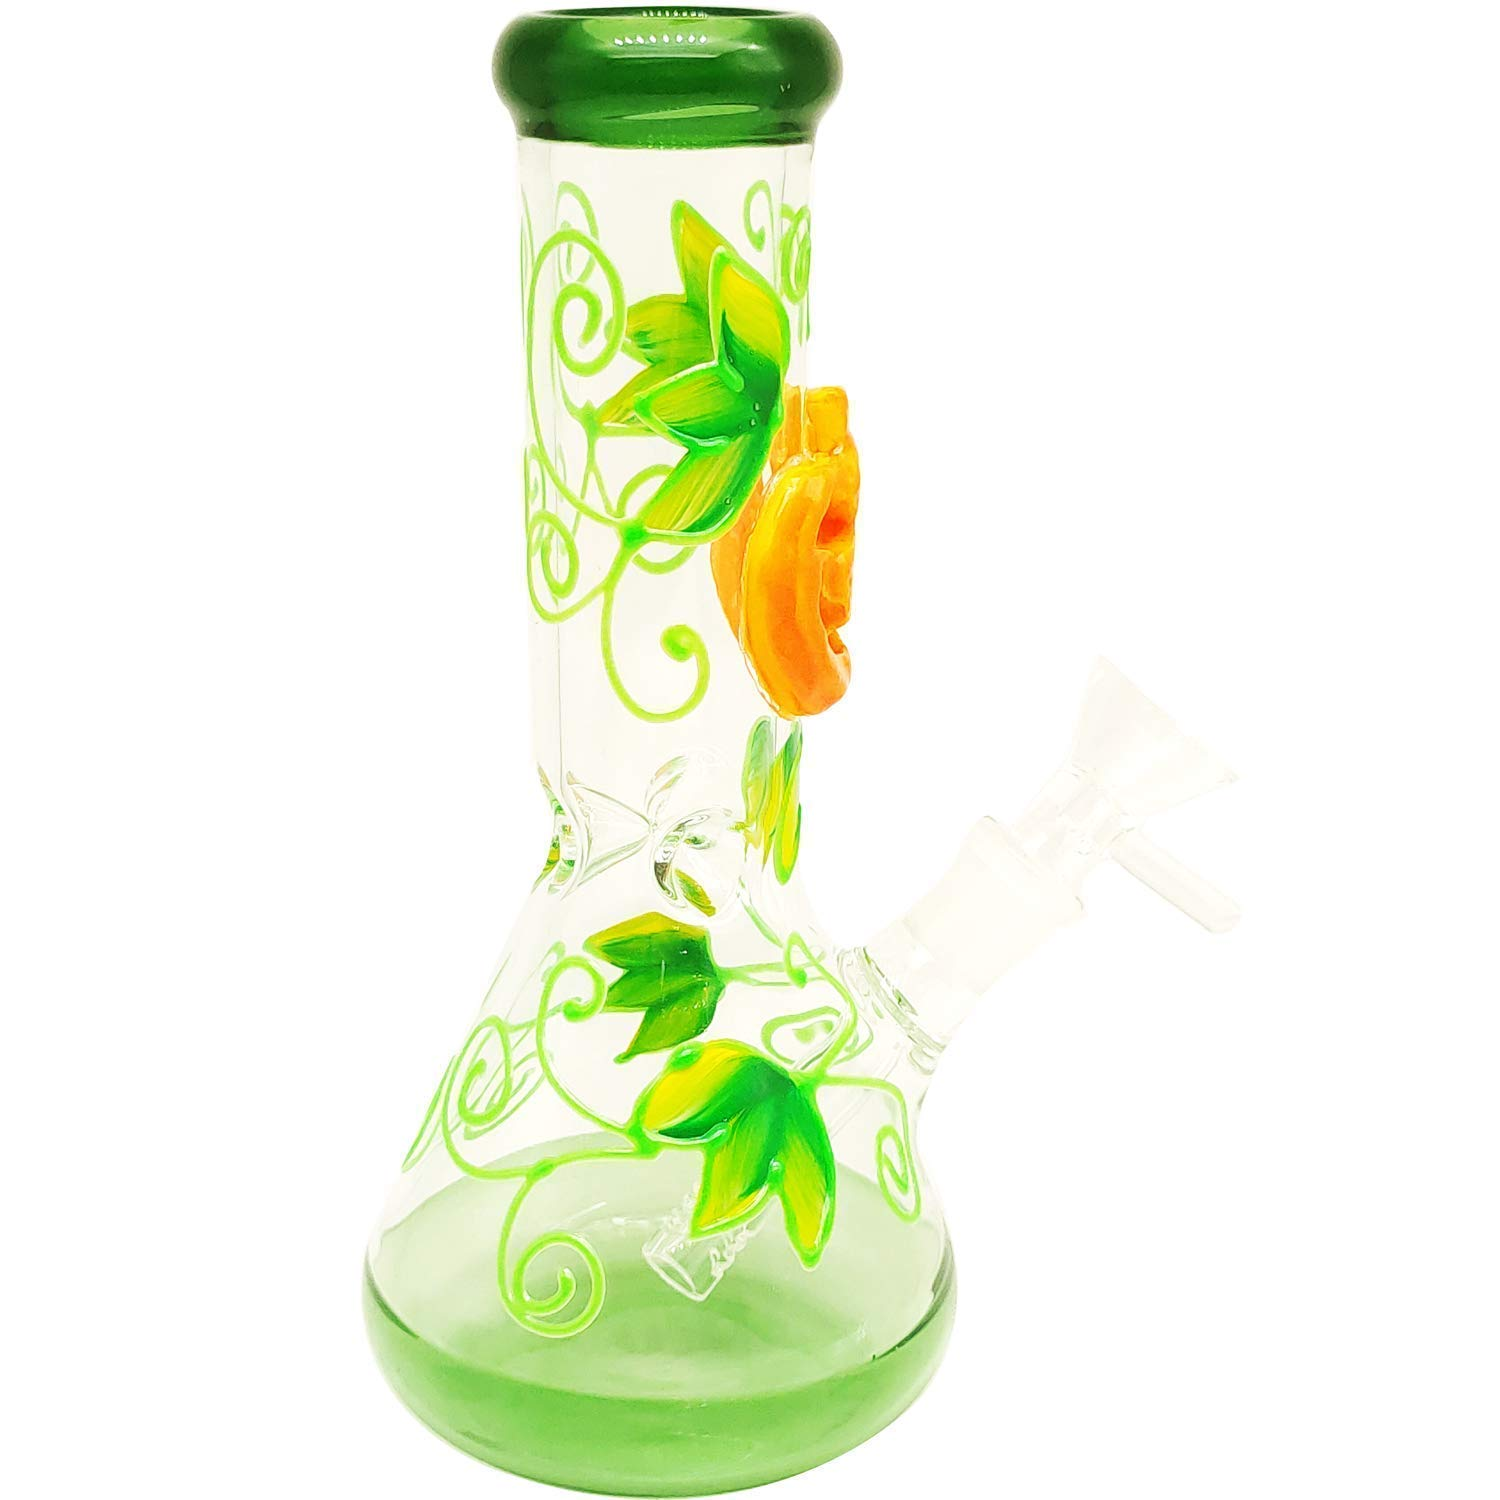 GoMicocop Halloween 3D Pipe Pumpkin 8 Inch Glass Vase Decoration Sculpture Hand Crafted and Designed Elegant and Durable Glow In the Dark